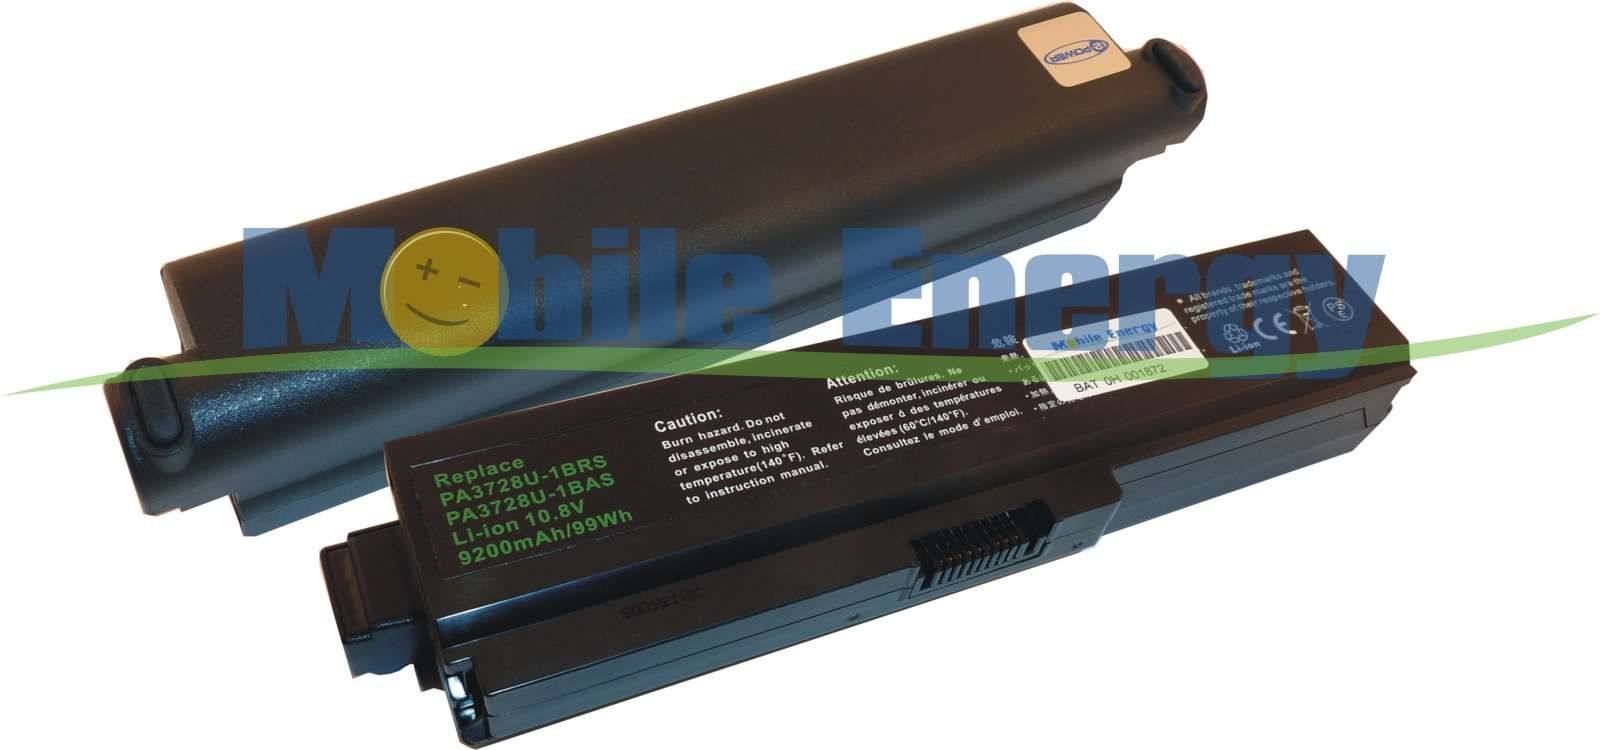 Mobile-Energy Baterie Toshiba Satellite A660 / A665 / C640 / C65